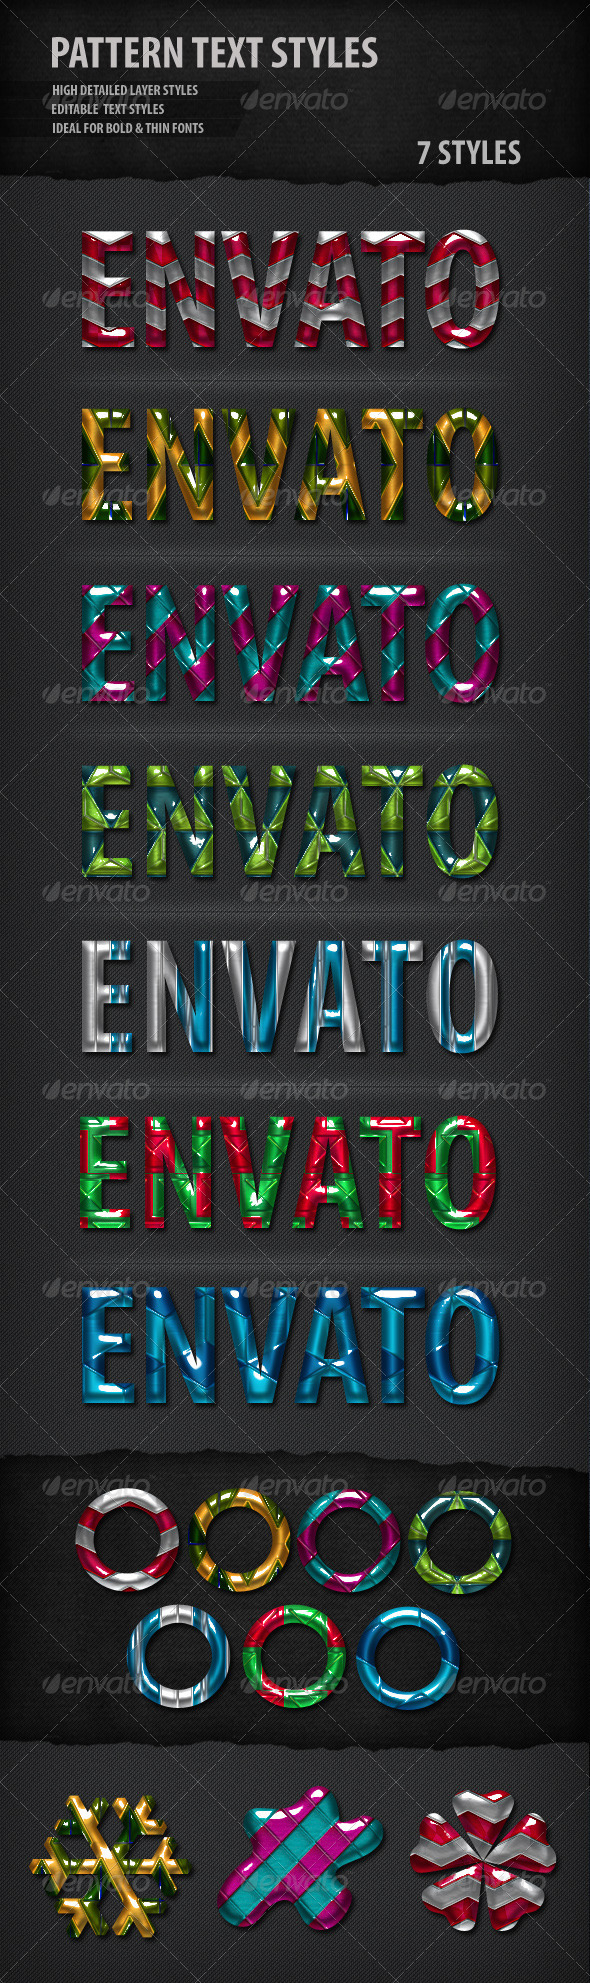 Pattern Text Styles - Text Effects Actions